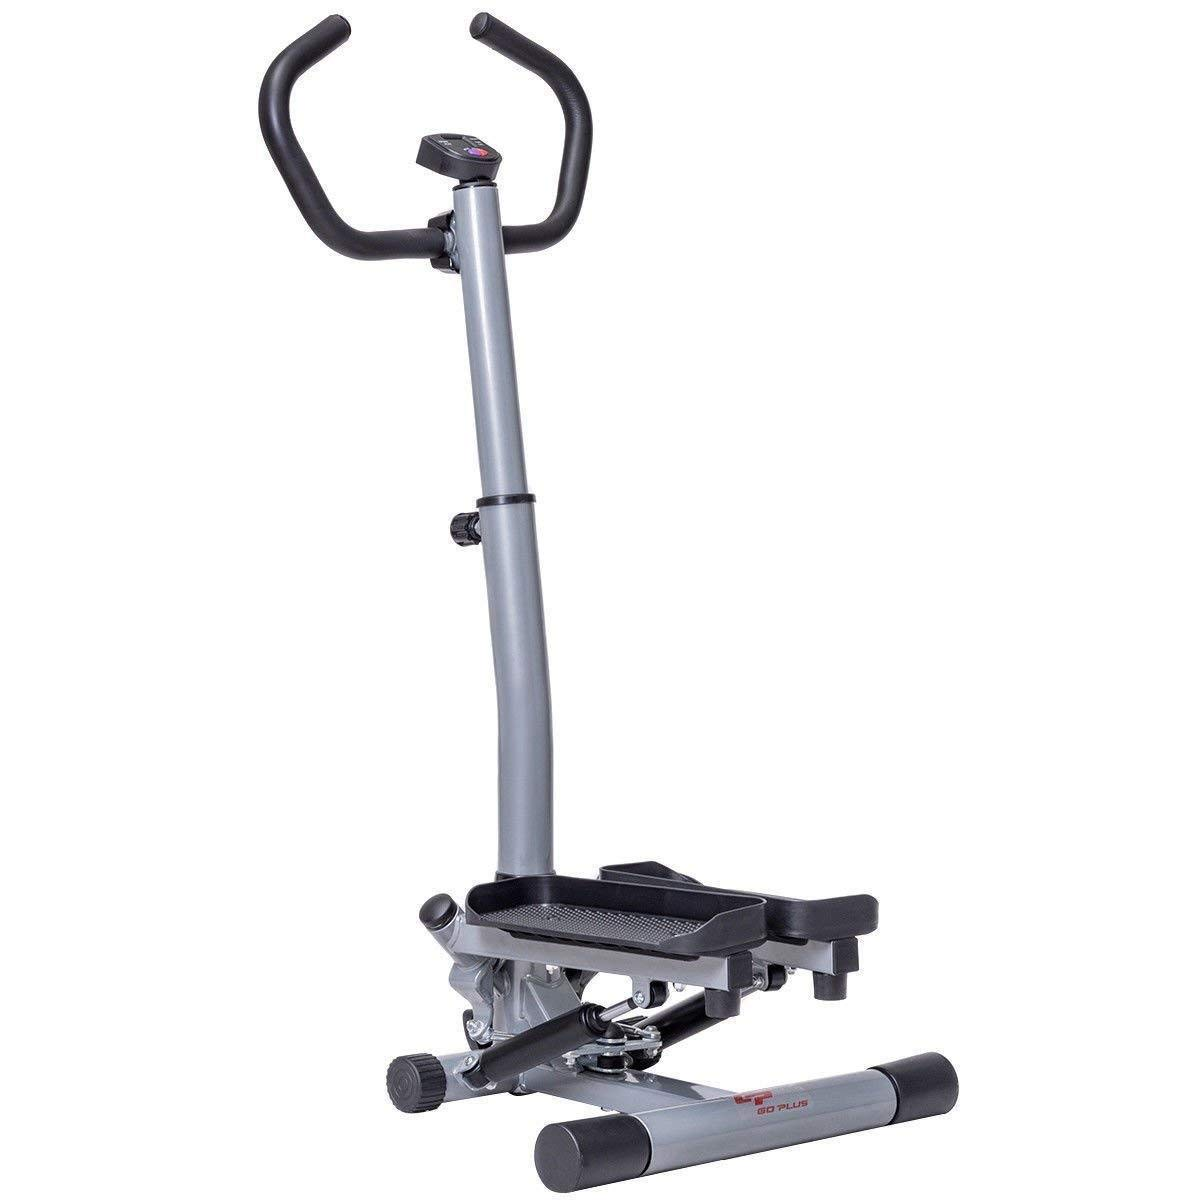 Selva Twister Stepper w/Handle Bar – 12 Level Step Machine | LCD Monitor Time Calories Count Height Adjustable Sturdy Heavy Duty Support 220Lbs | for Fitness Workout Exercise Thigh Buttock Bone Joint by Selva (Image #3)